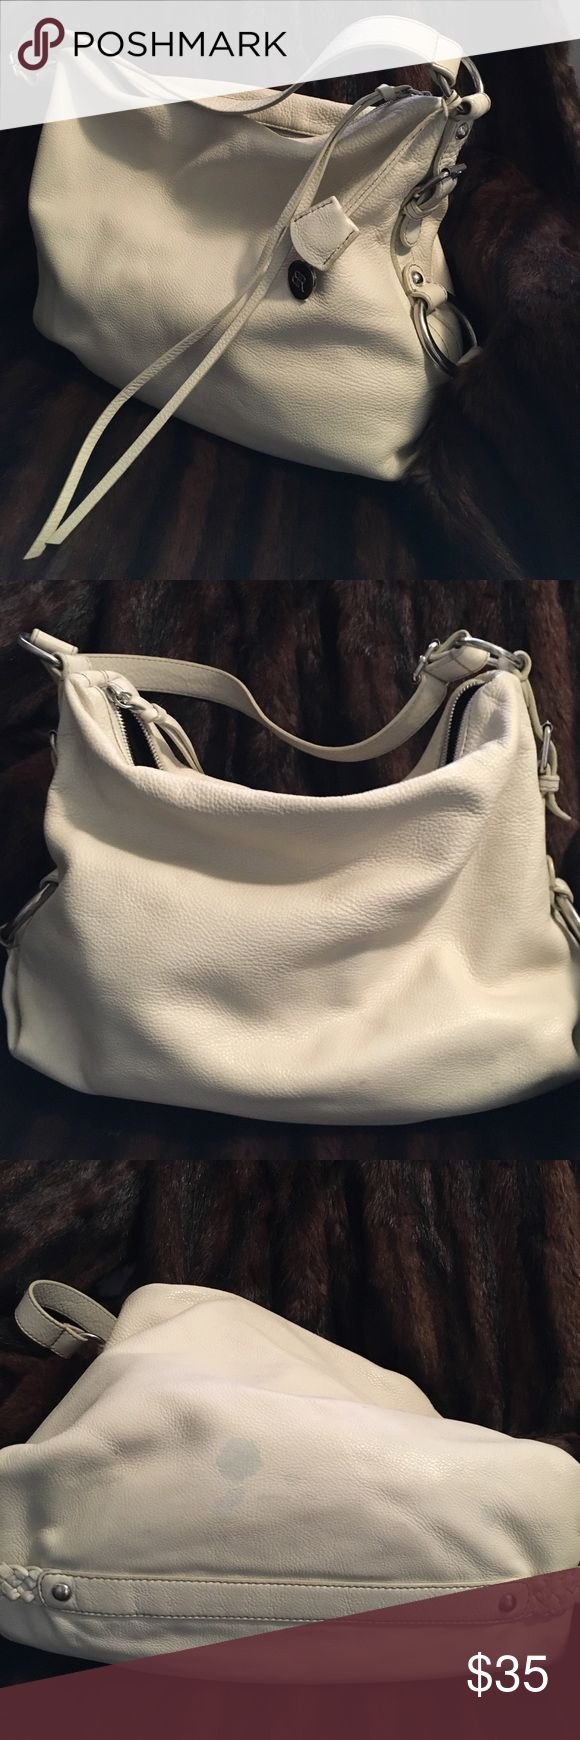 Banana Republic bag Soft white leather Banana Republic bag. In fair used condition. Does have some small scuffs in leather and a few light bluish marks on bottom of bag (as shown in pics) Banana Republic Bags Shoulder Bags